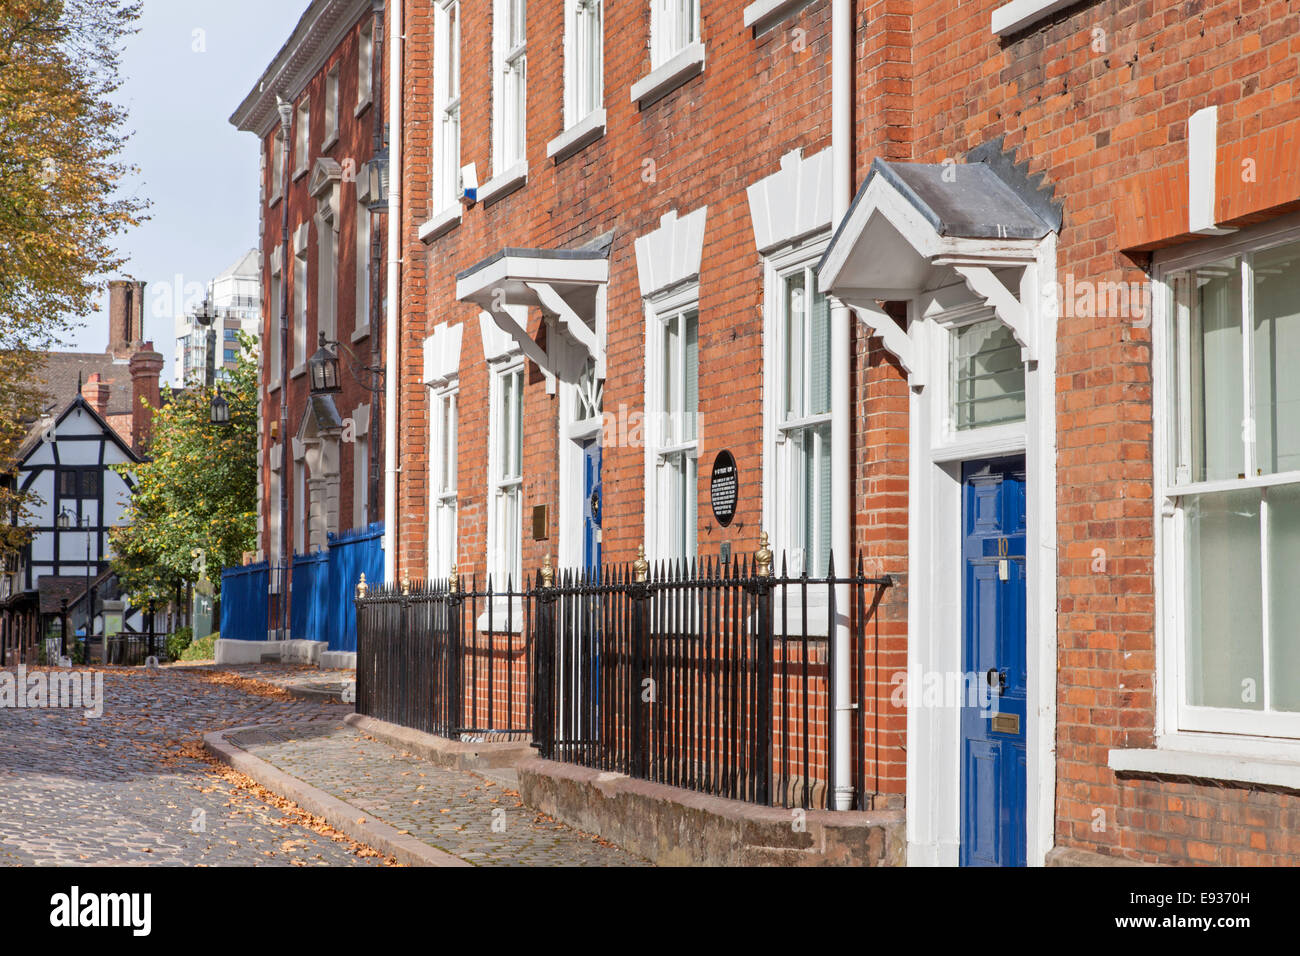 Early 19th century town houses in Priory Row, Coventry, Warwickshire, England, UK - Stock Image